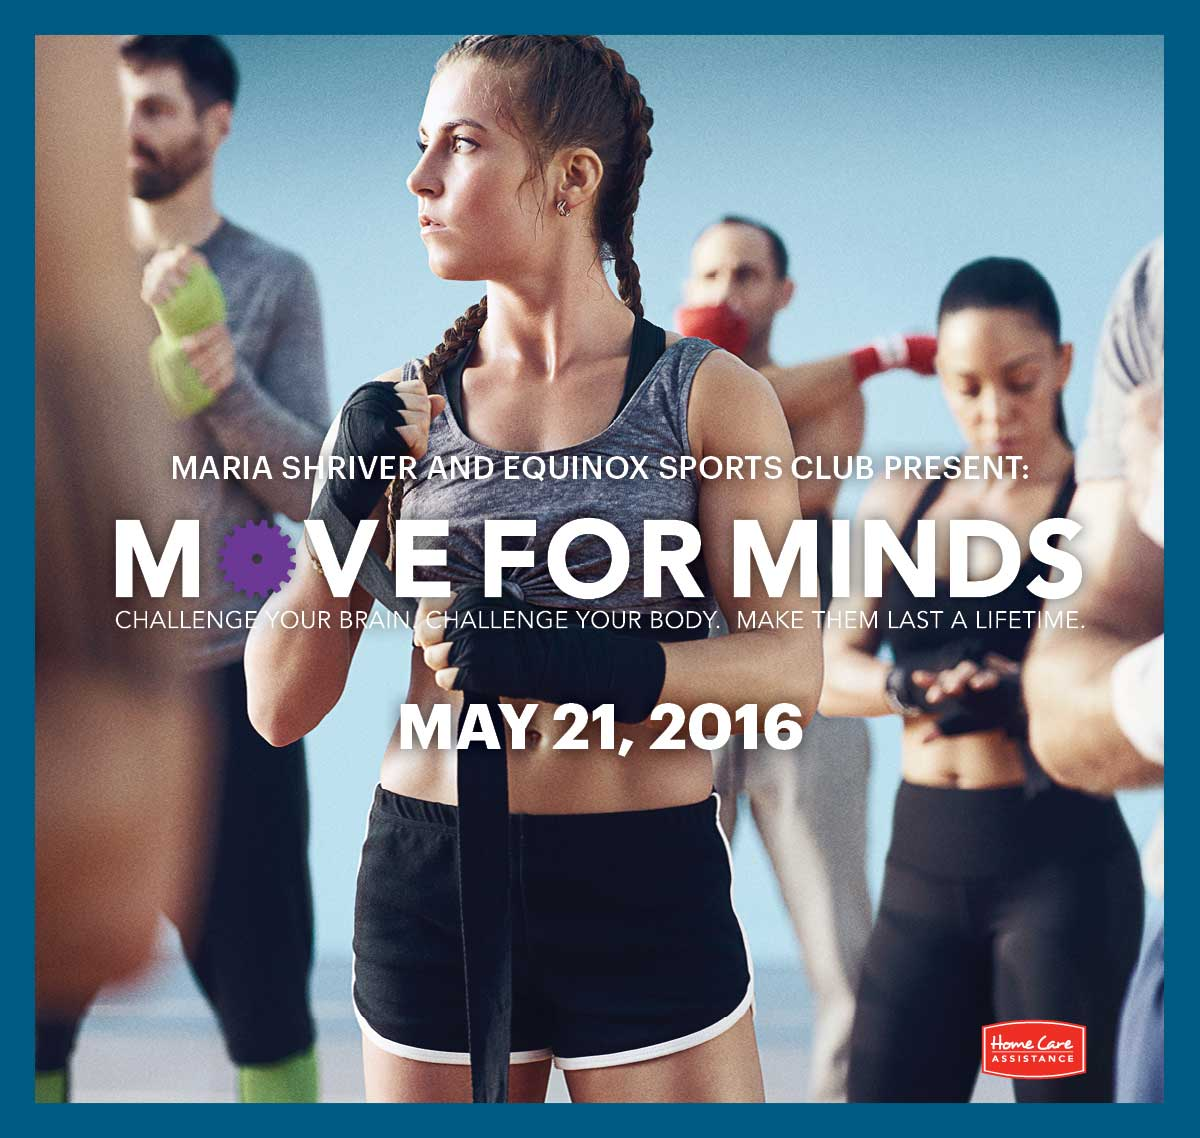 Maria Shriver's Move for Minds Event